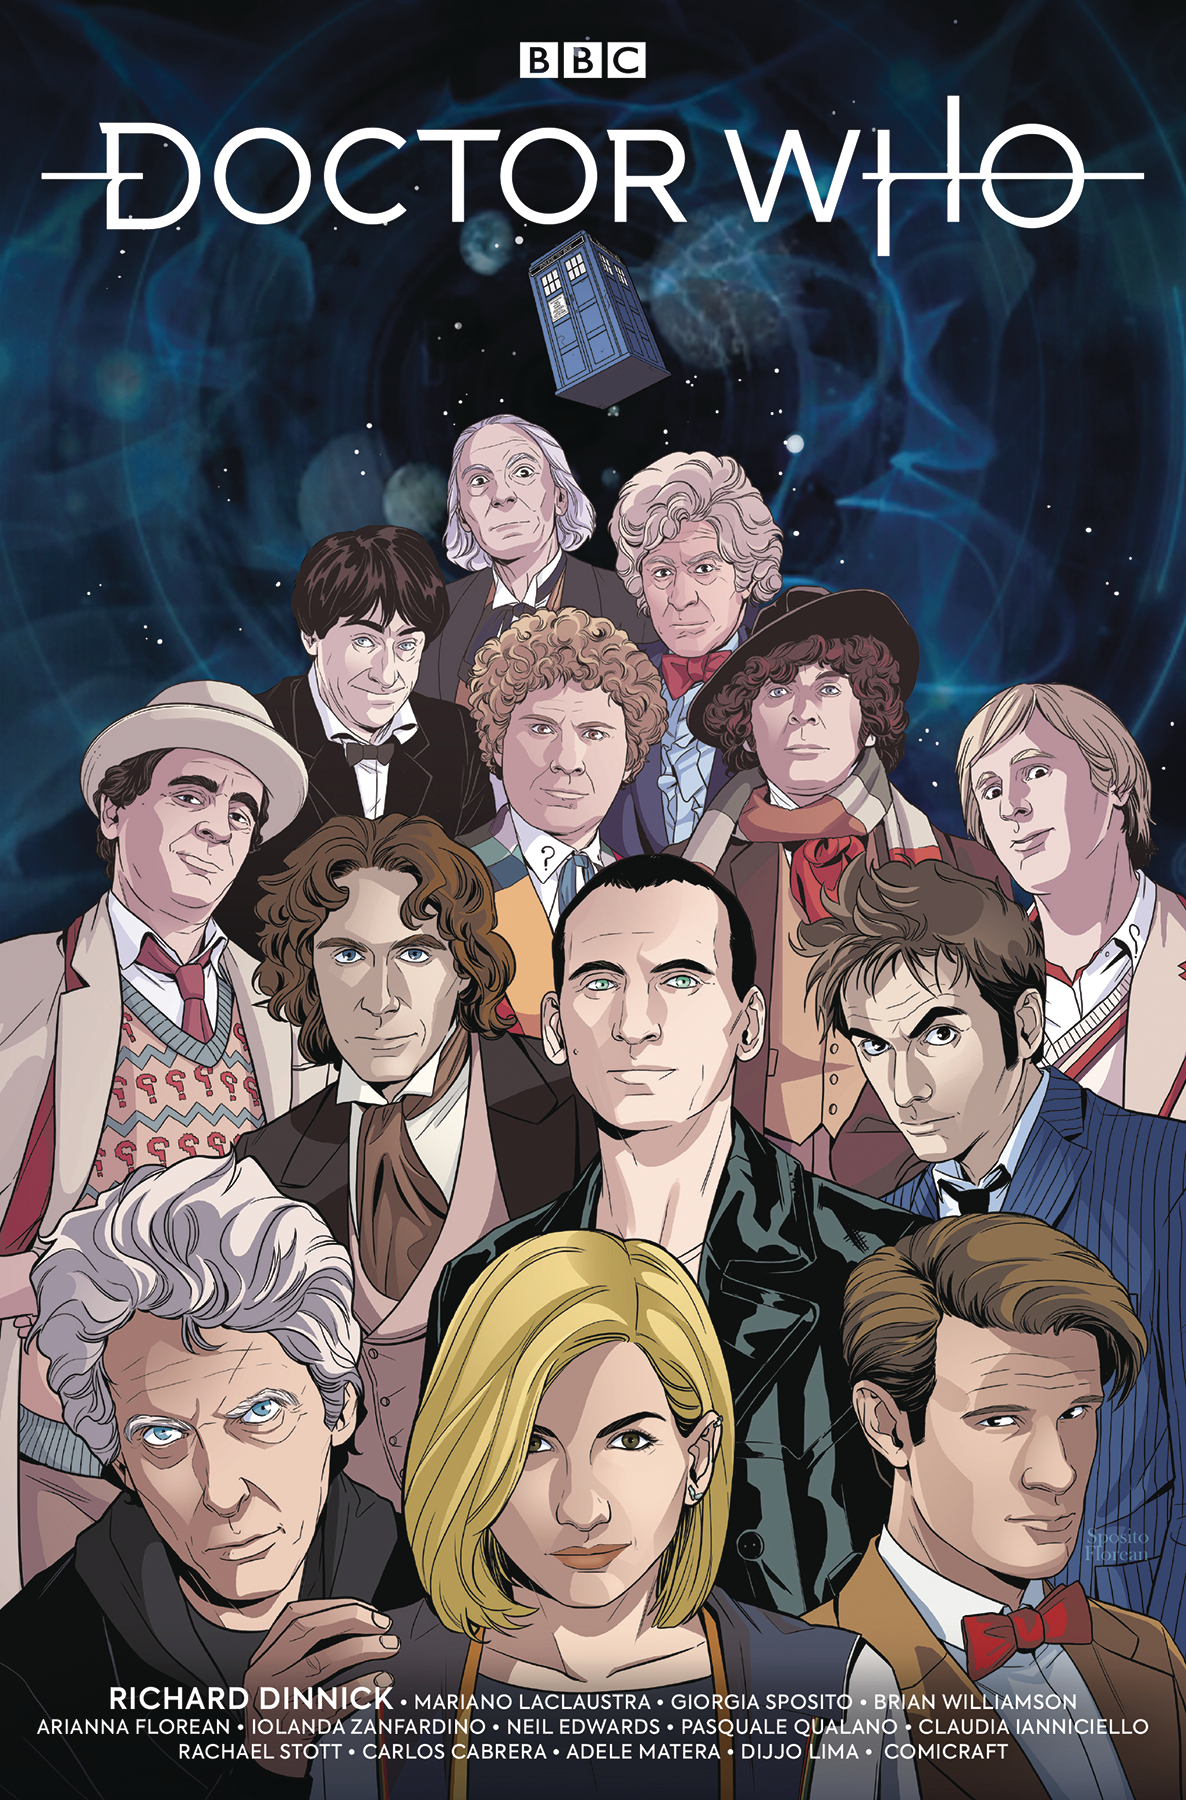 DOCTOR WHO 13TH #0 NYCC EXC CVR